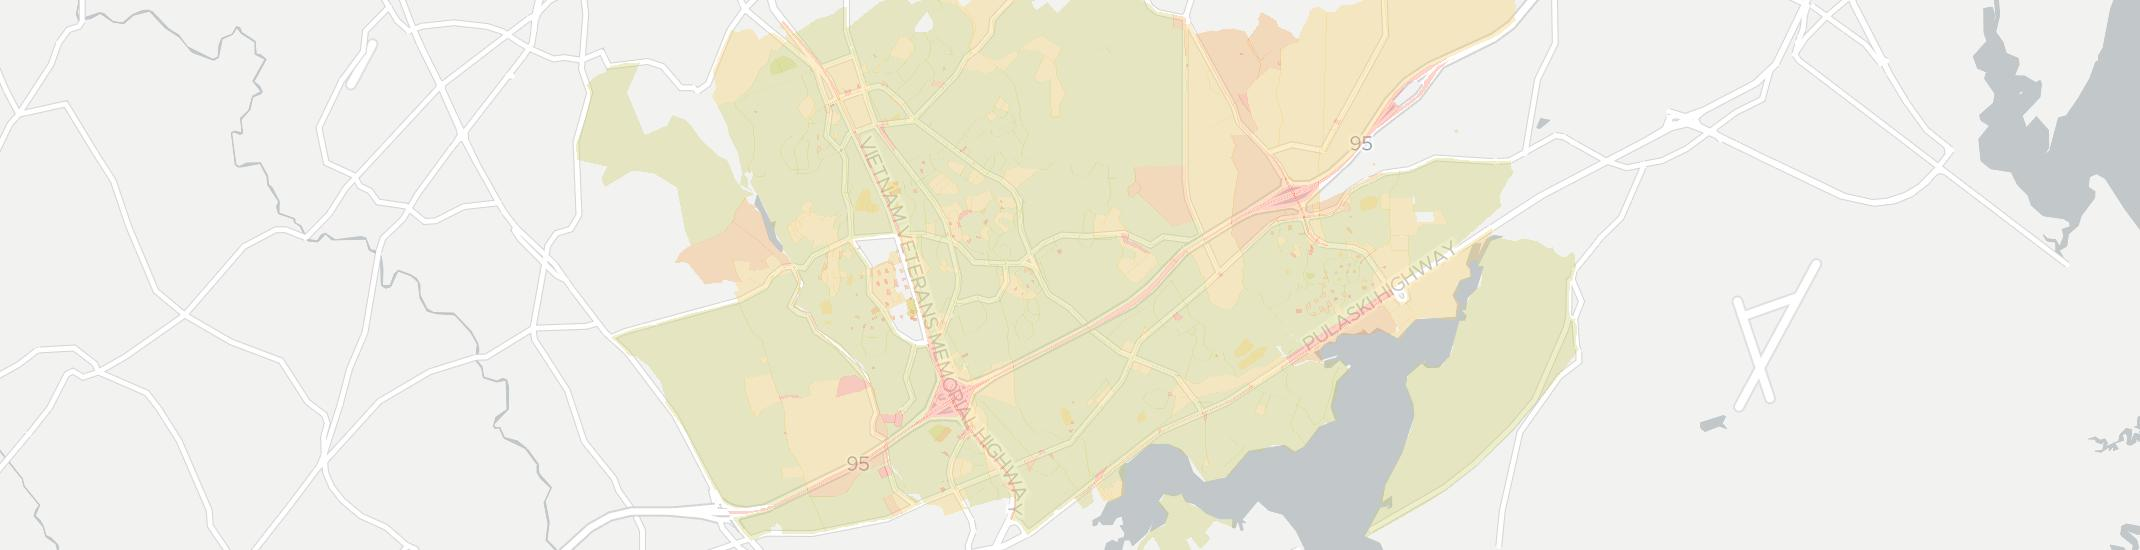 Abingdon Internet Competition Map. Click for interactive map.